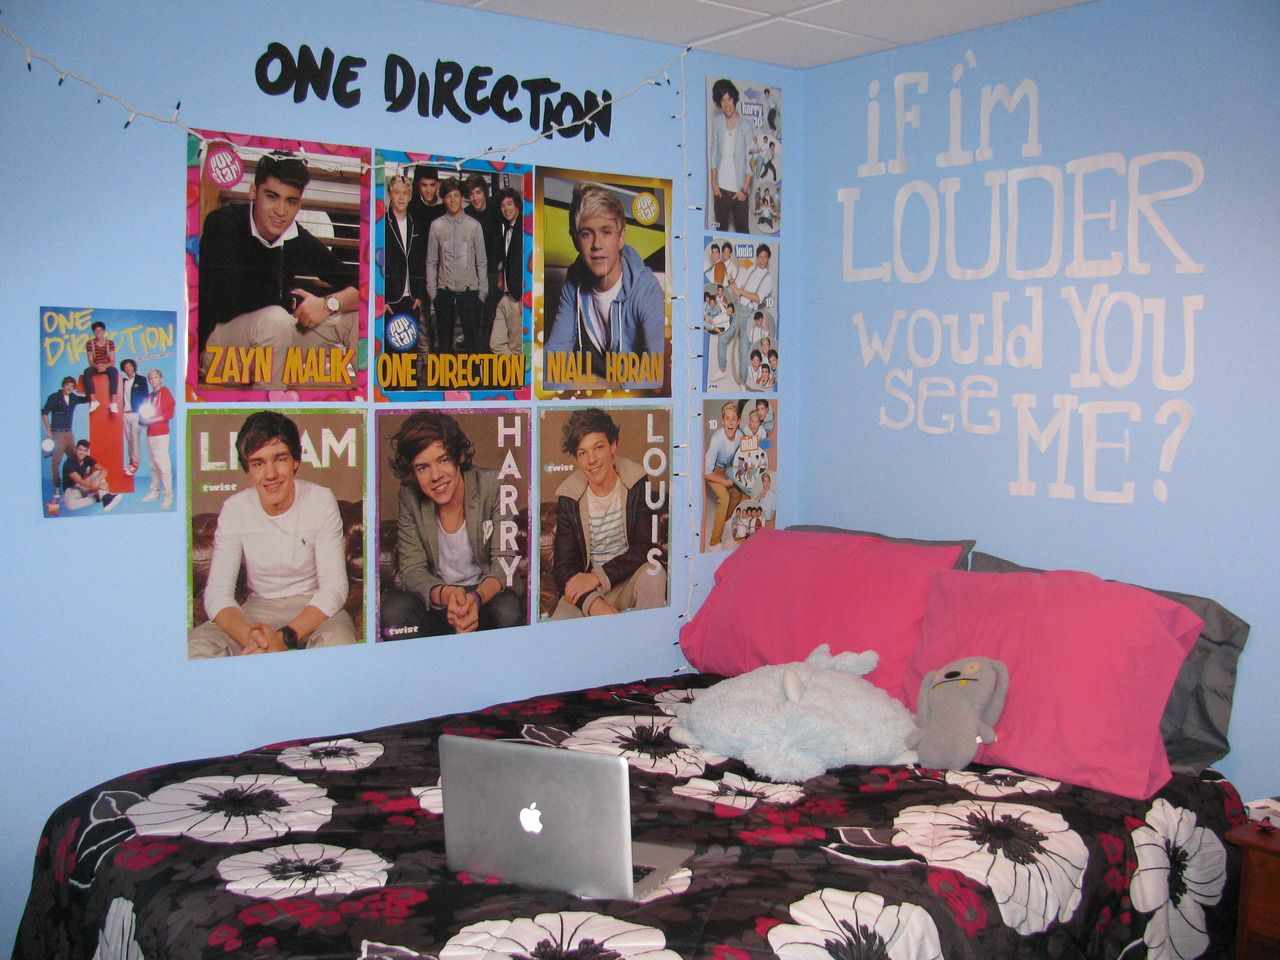 Bedroom ideas for girls tumblr - One Direction Bedroom Ideas Google Search